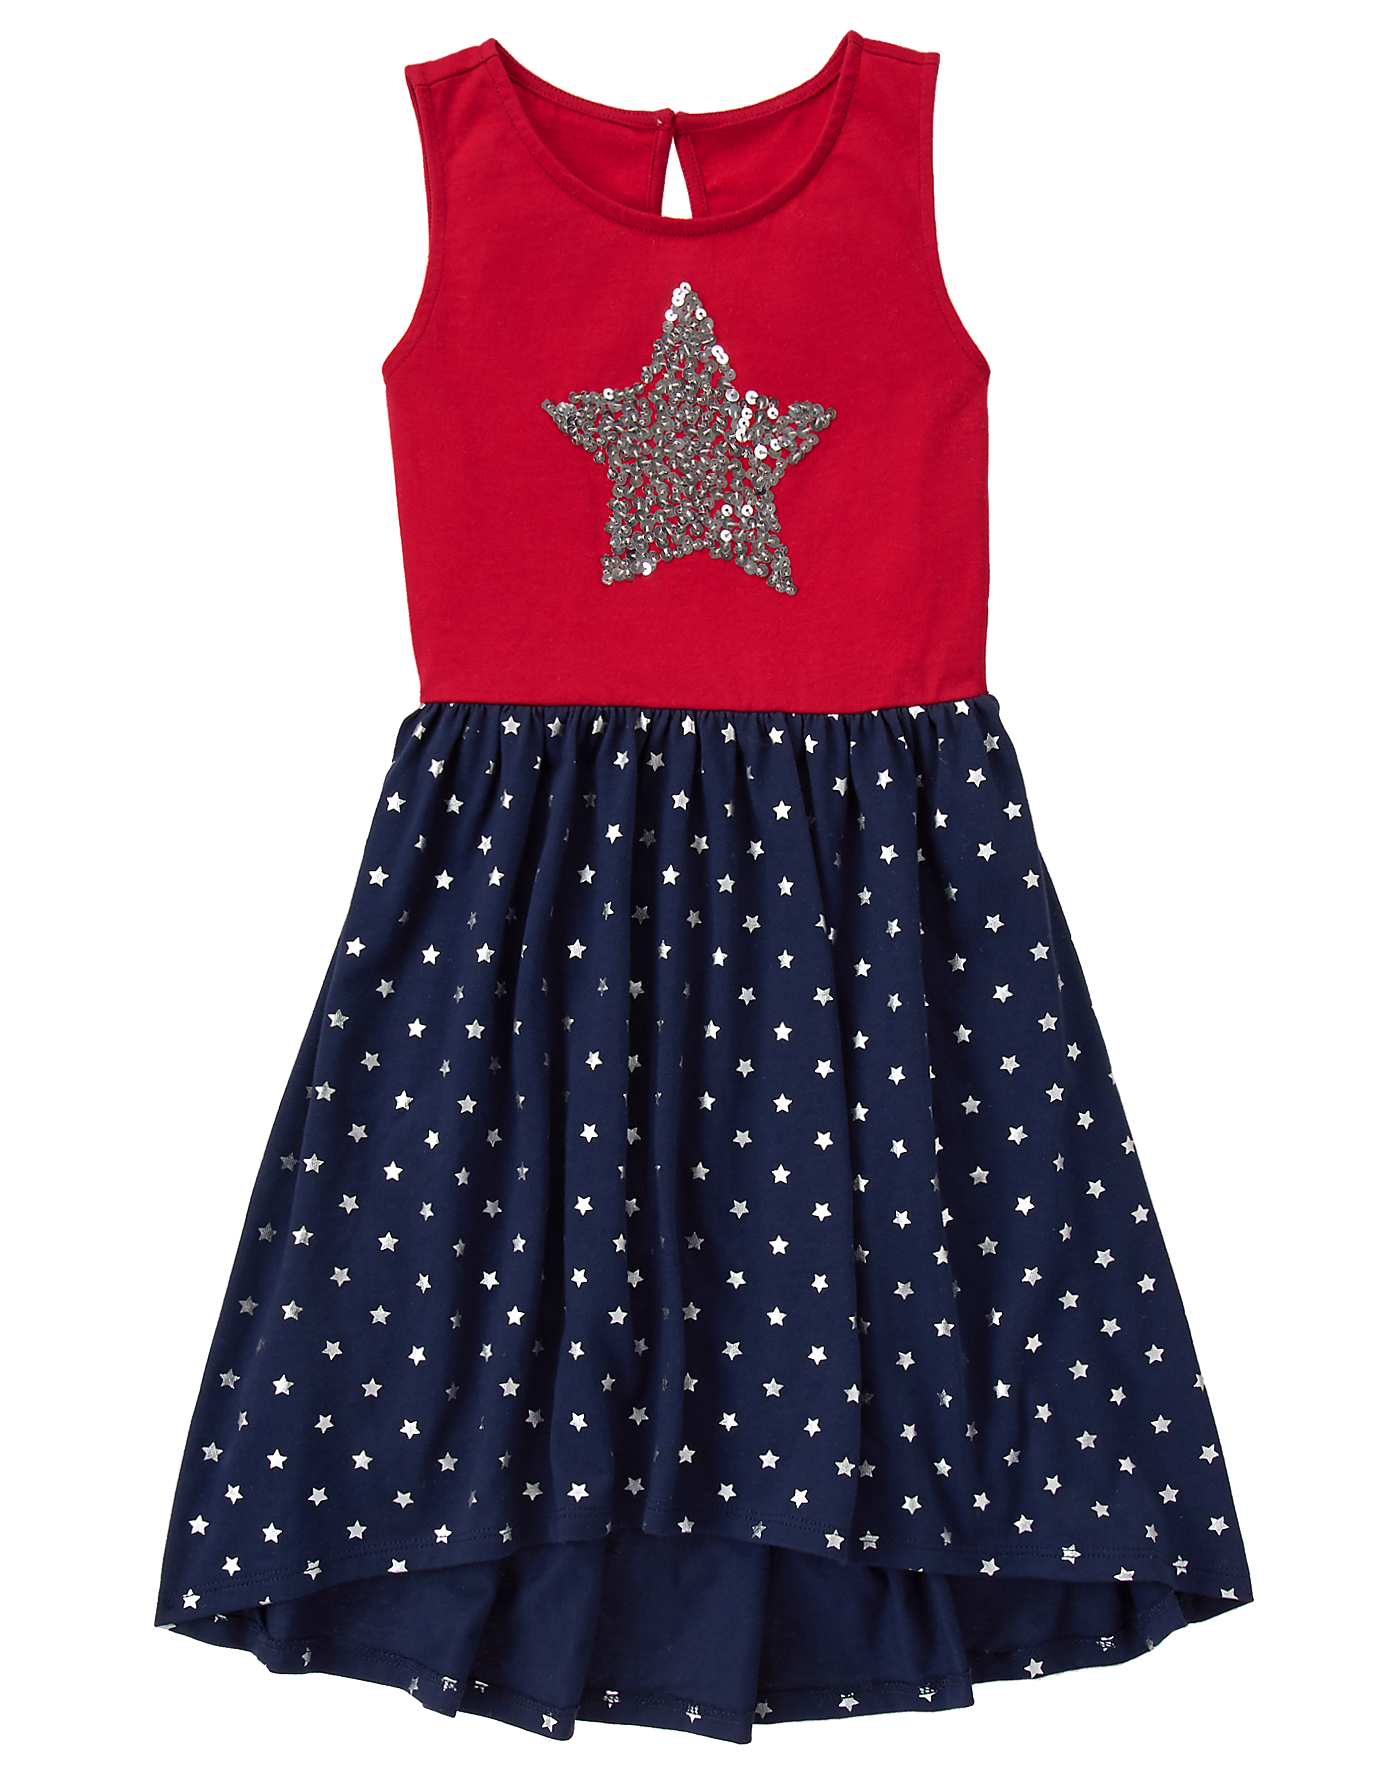 8ee1cb7675 Girl True Red Sequin Star Dress by Gymboree. 100% cotton jersey, Keyhole  button back, Features embroidery with sequins, Pieced skirt, Approximately  knee ...